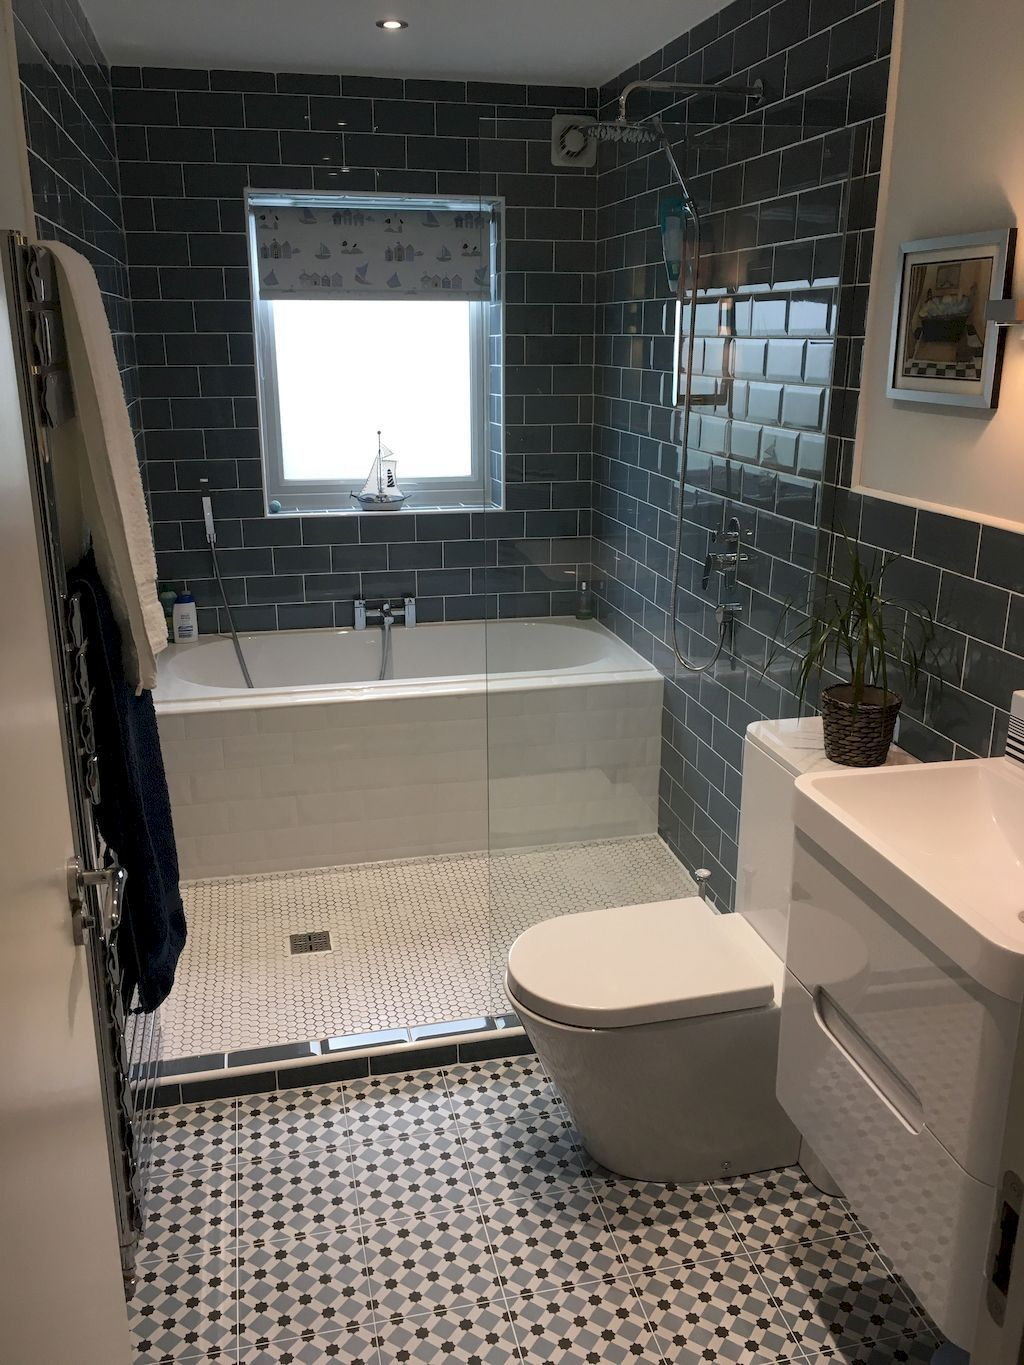 111 Small Bathroom Remodel On A Budget For First Apartment Ideas